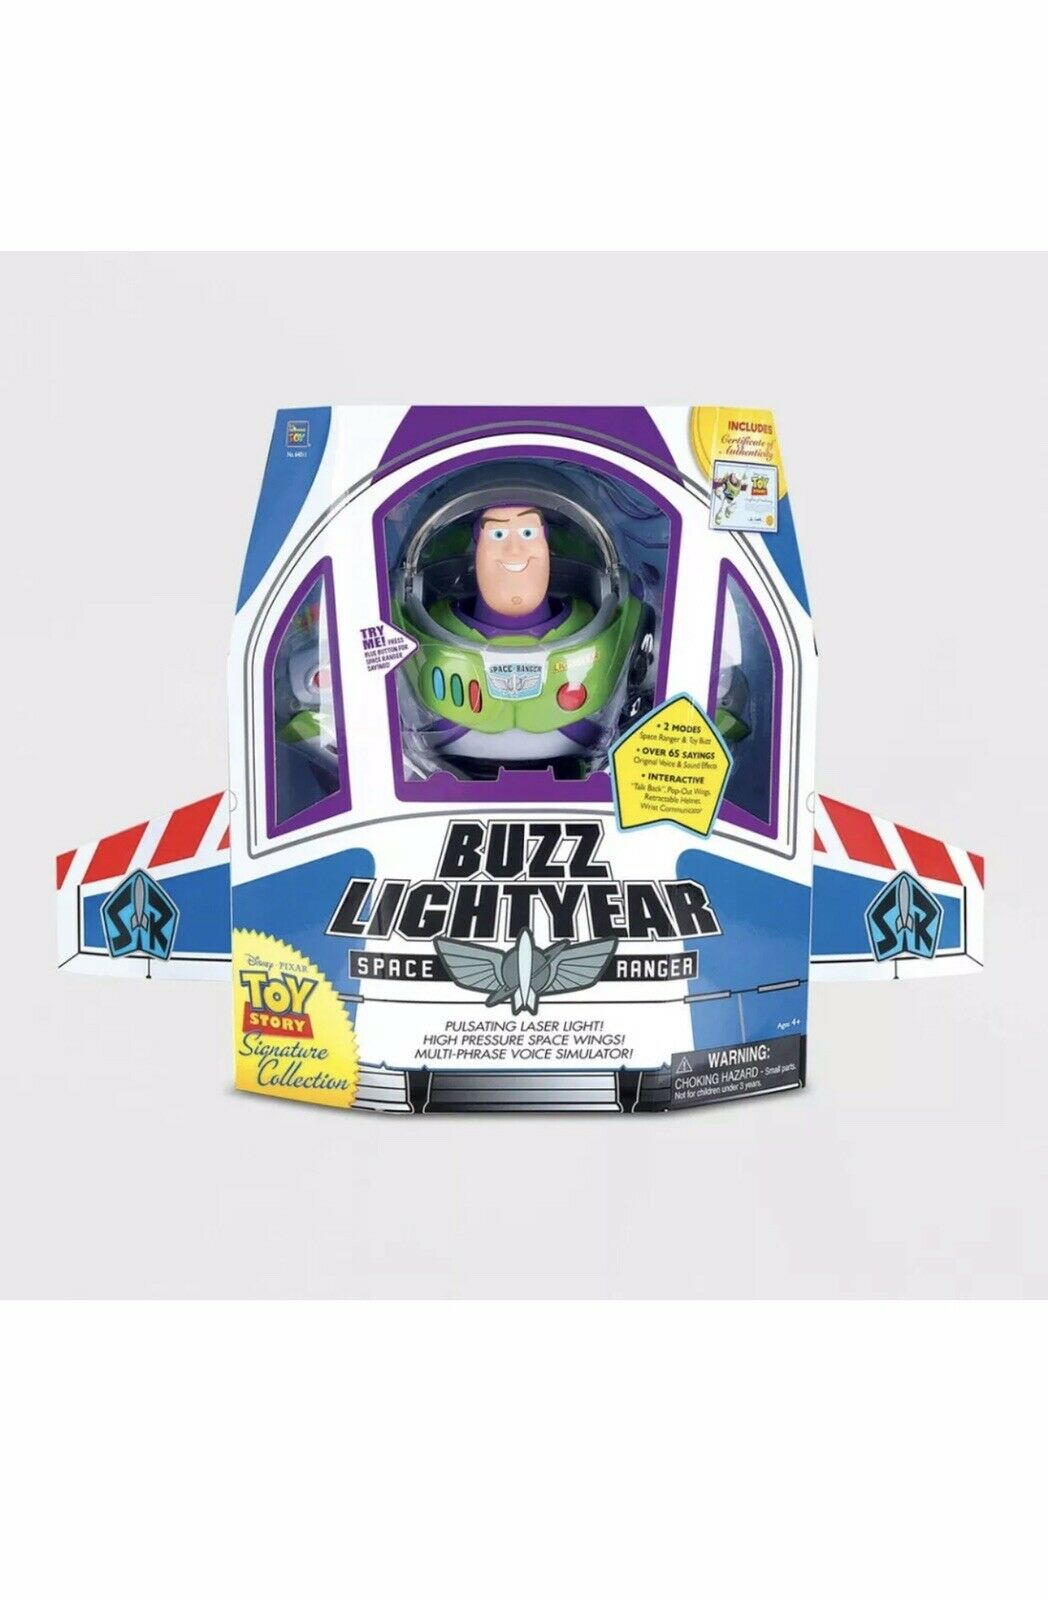 Toy Story Collection Buzz Lightyear Lightyear Lightyear Kid Toy Gift 35310d